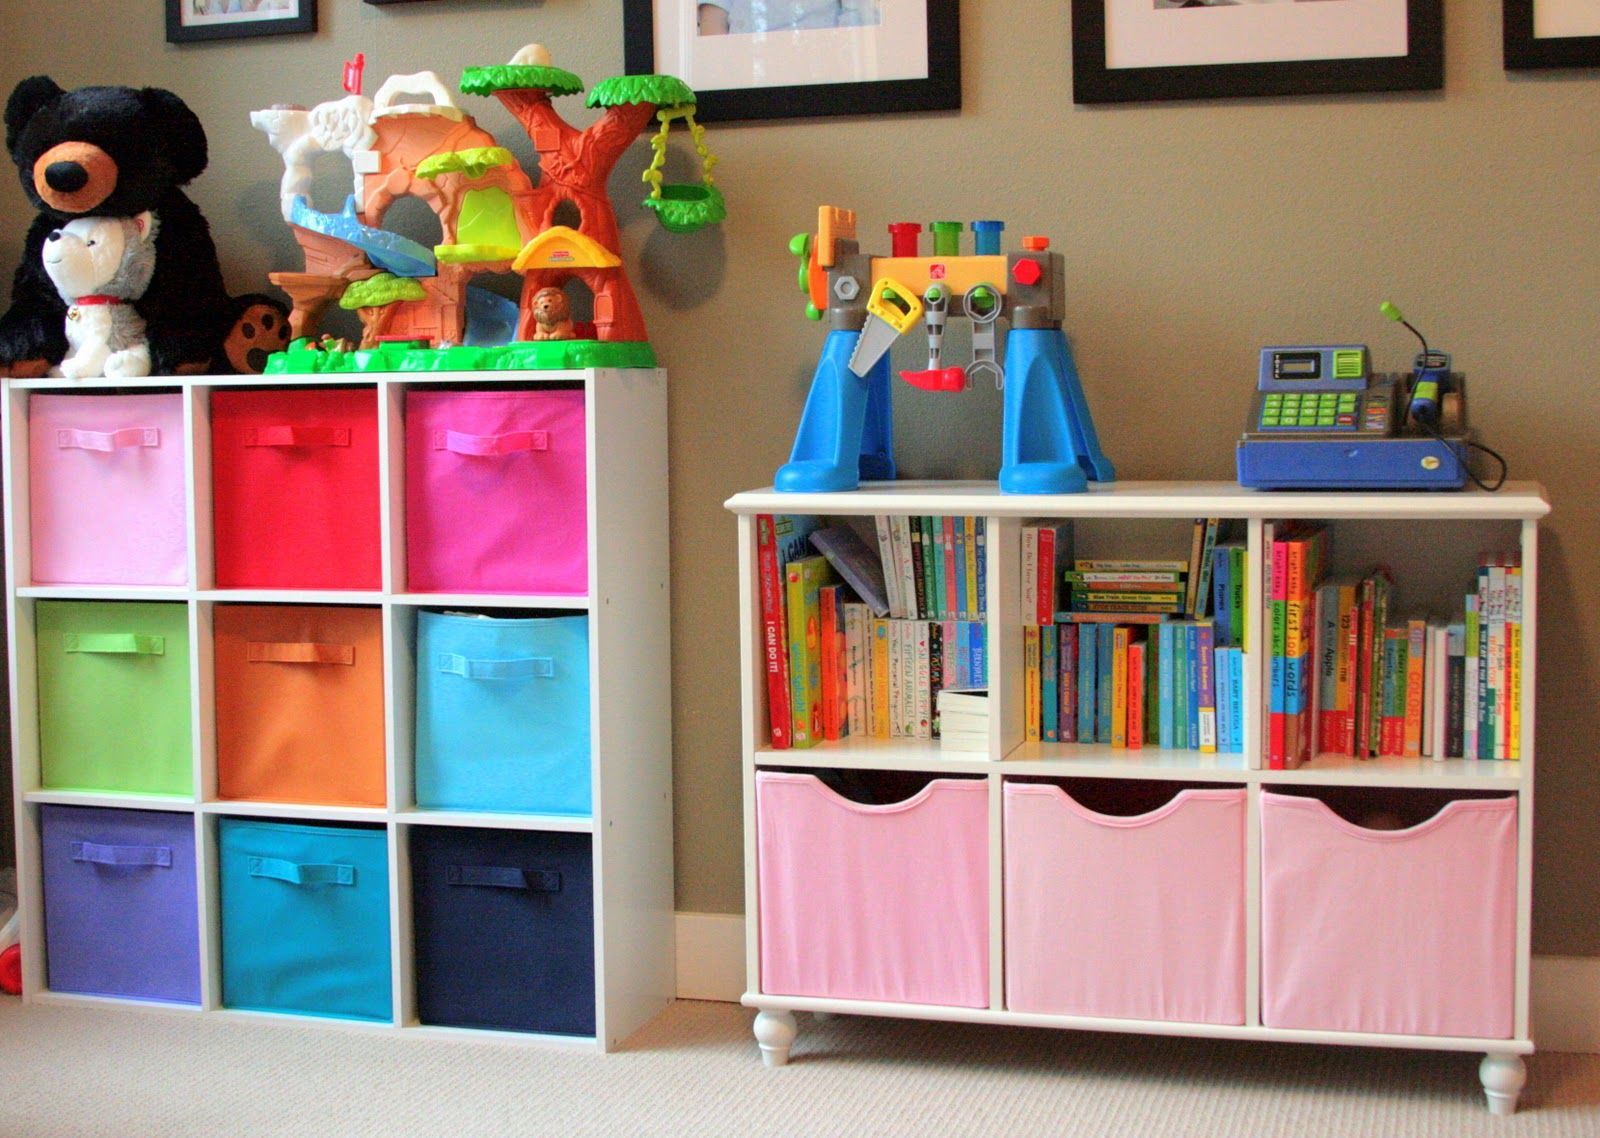 Make Sure That There Is Enough Storage E For Organizing The Various Toys Books